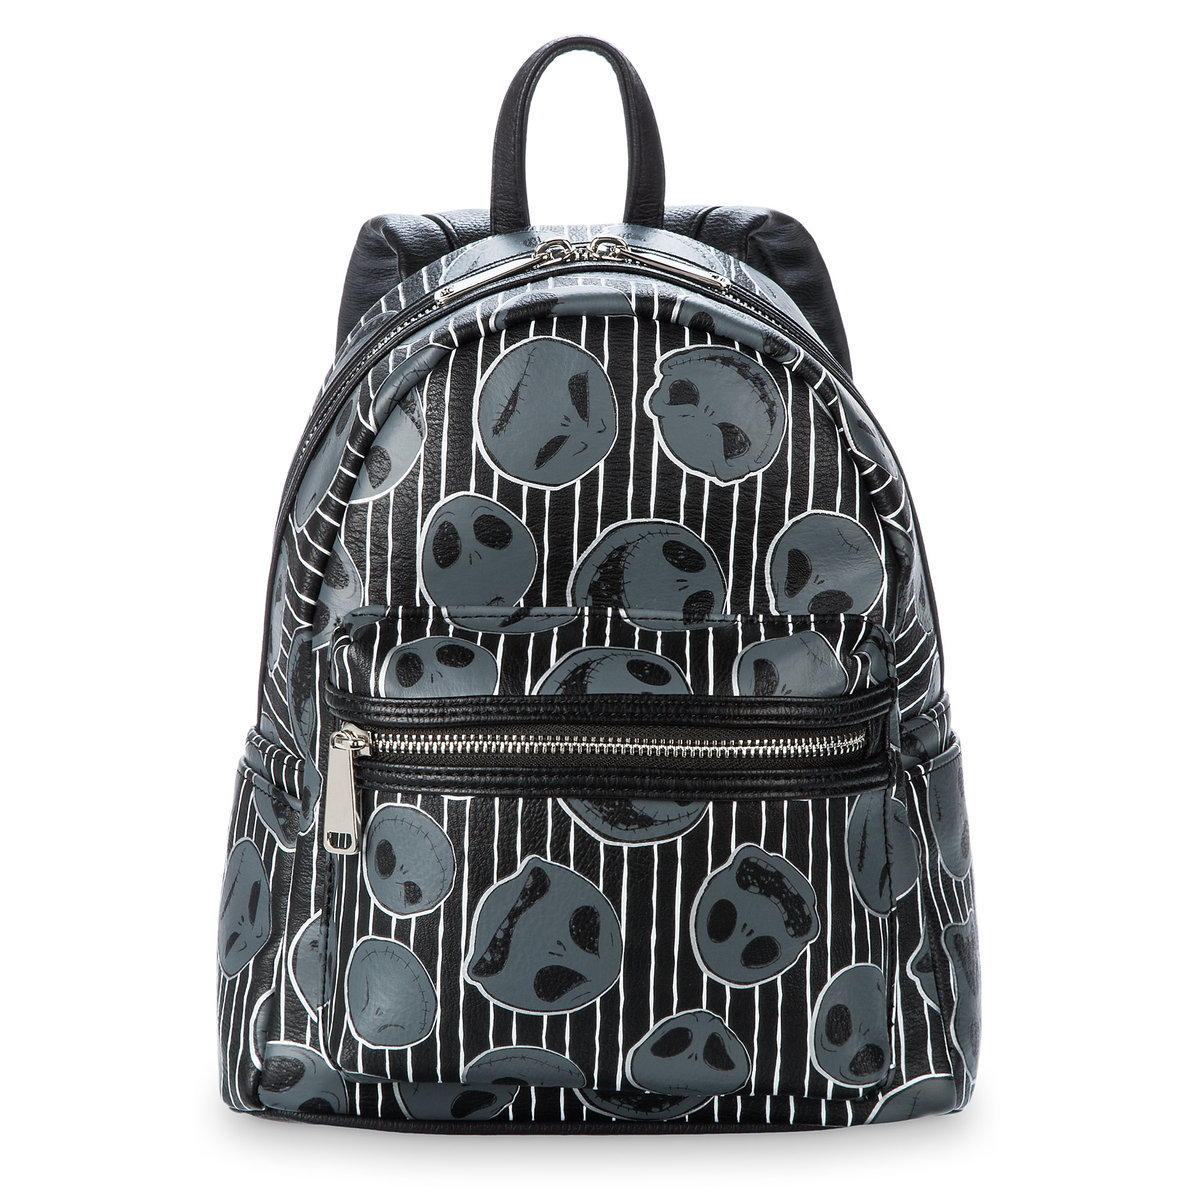 8e415eb6235 Product Image of Jack Skellington Mini Backpack by Loungefly   1